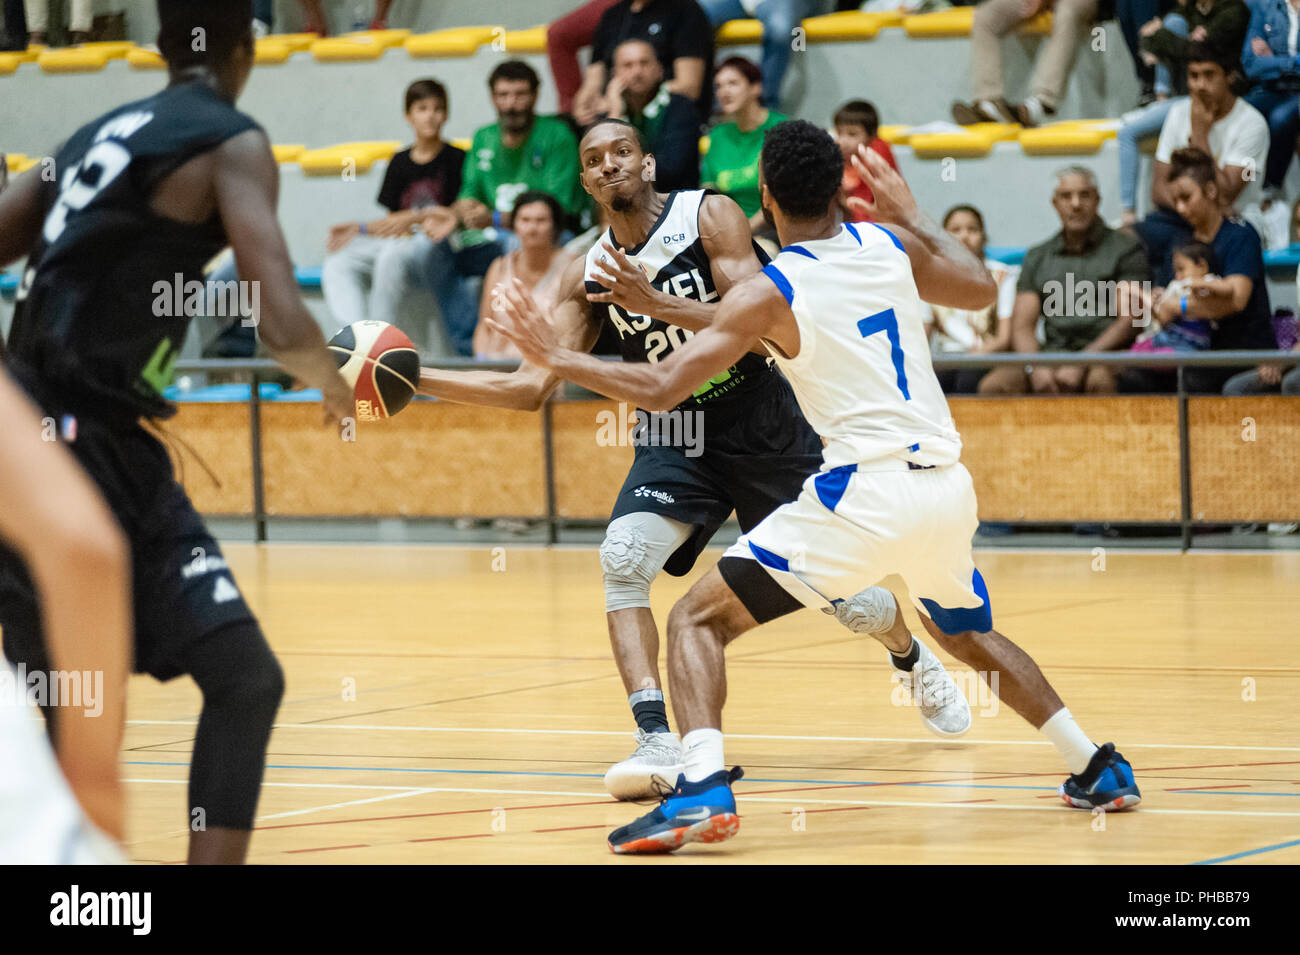 Belleville-sur-Saône, France. 31st August 2018.  Ain Star Games is a preparation tournament - The match was against ASVEL and KK Mornar Bar (88-68). De Marcus Nelson with the ball. Credit: FRANCK CHAPOLARD/Alamy Live News - Stock Image